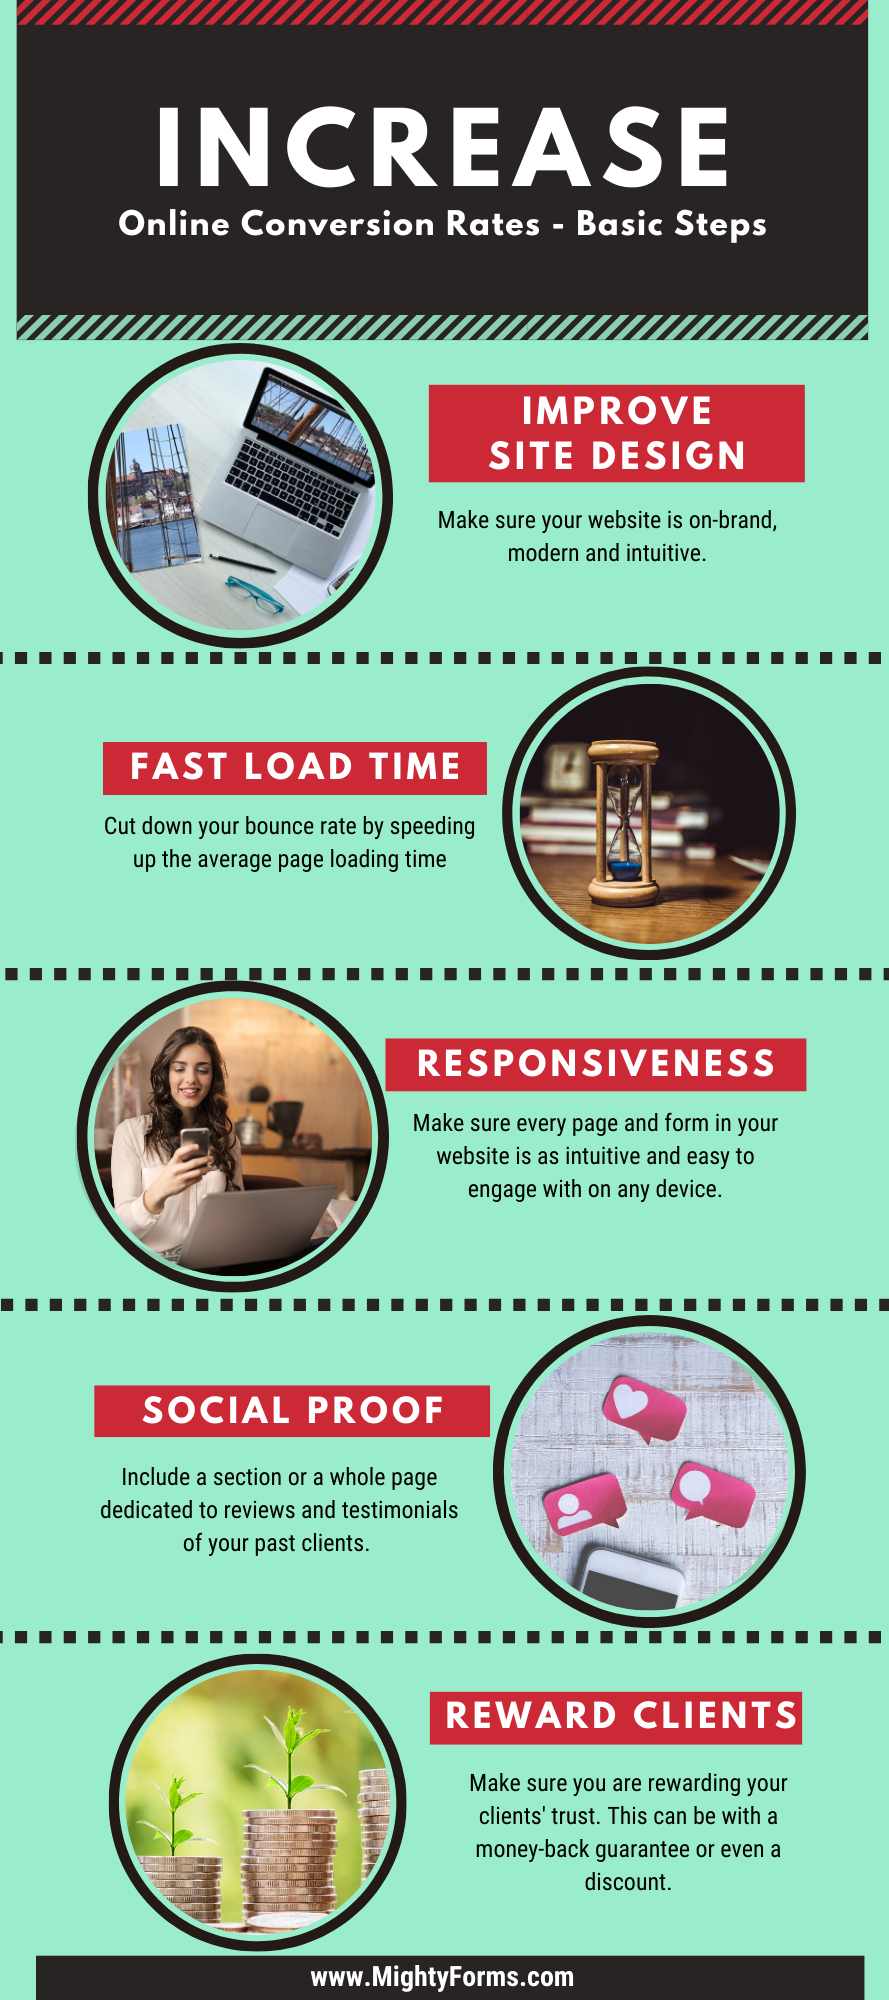 Infographic: Increase online conversion rates - basic steps